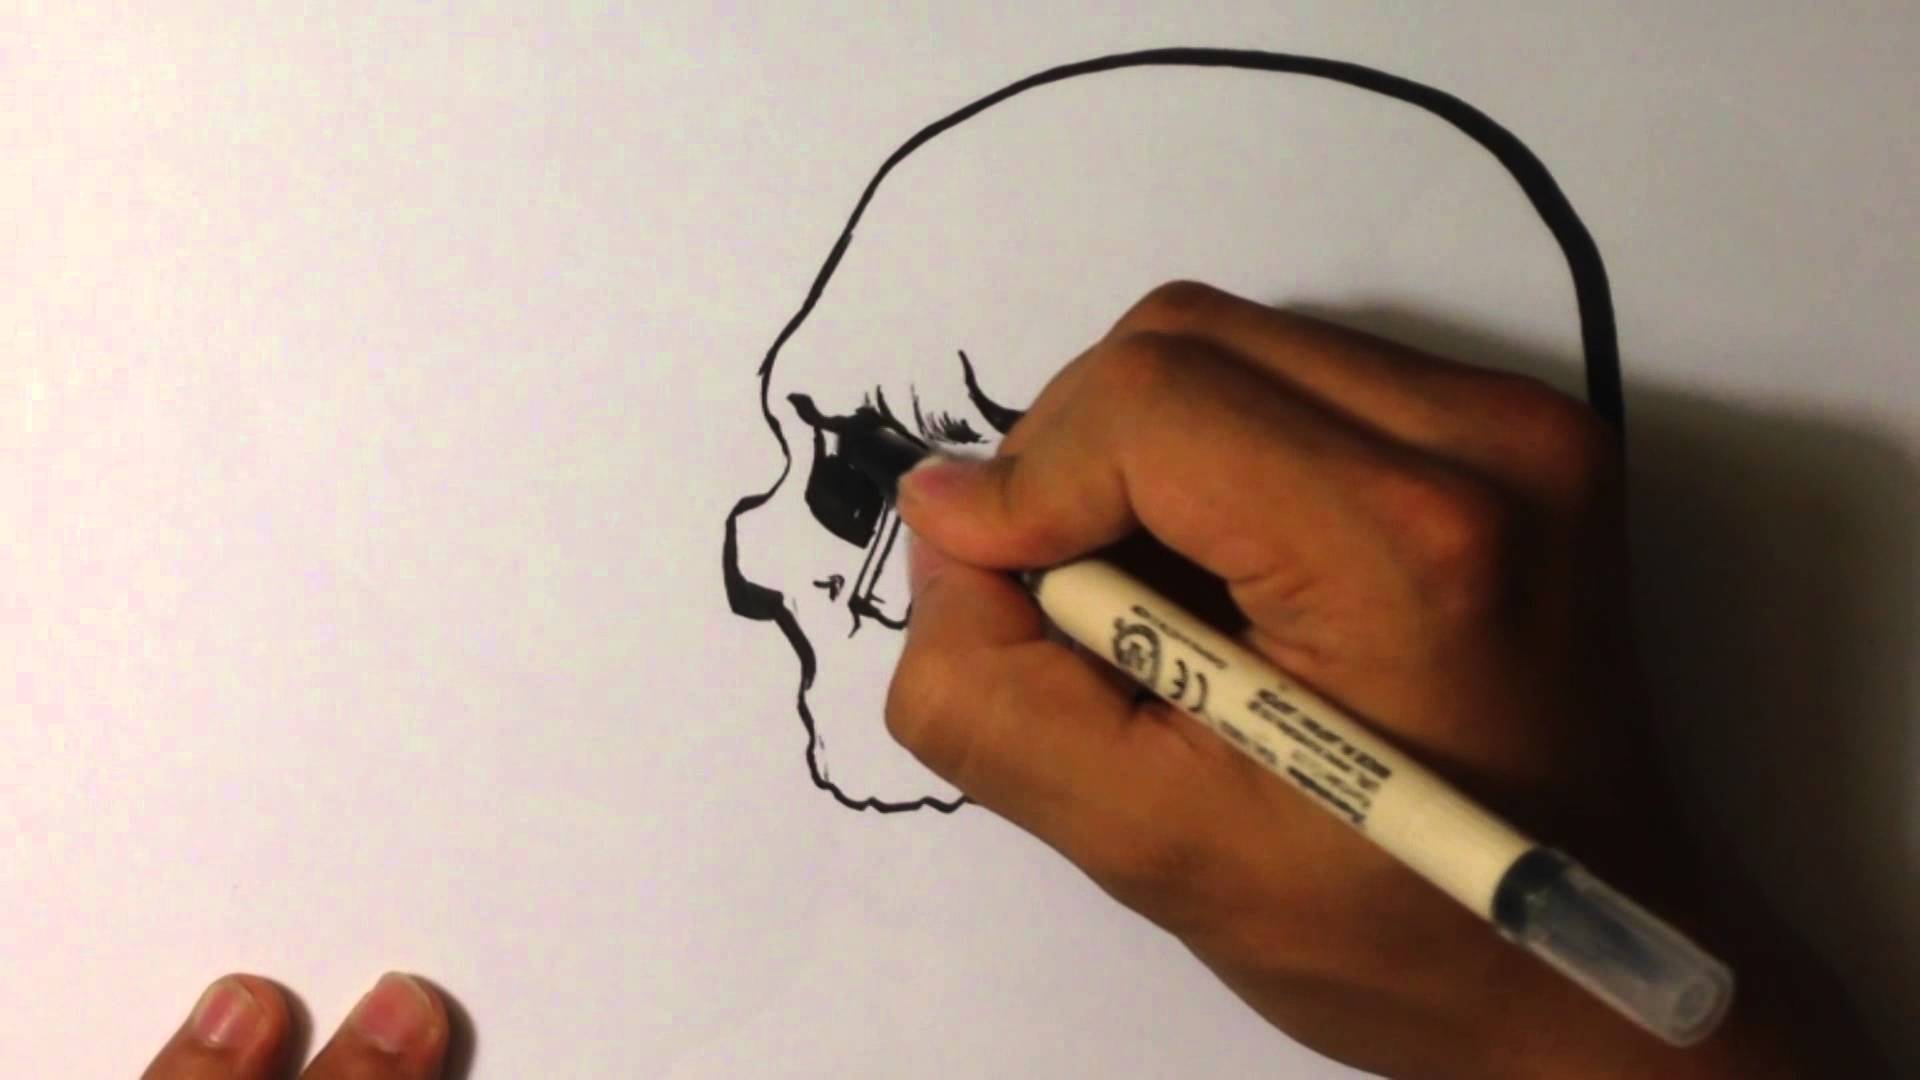 1920x1080 How To Draw A Skull With Calligraphy Pen